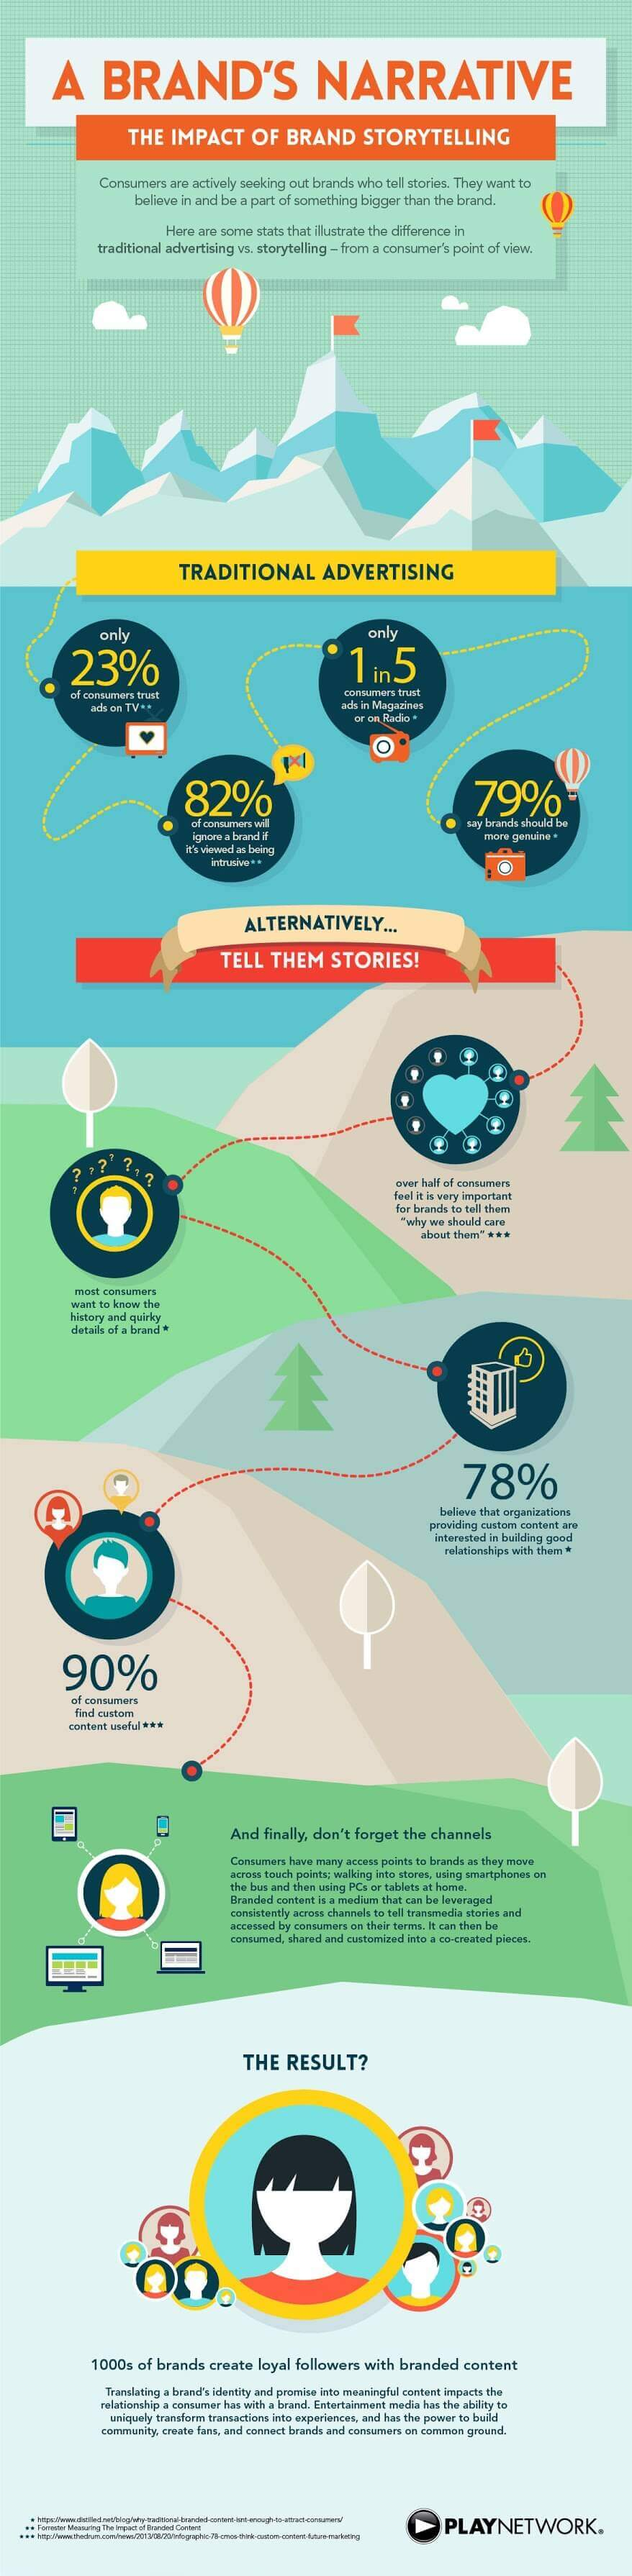 the-impact-of-brand-storytelling-infographic